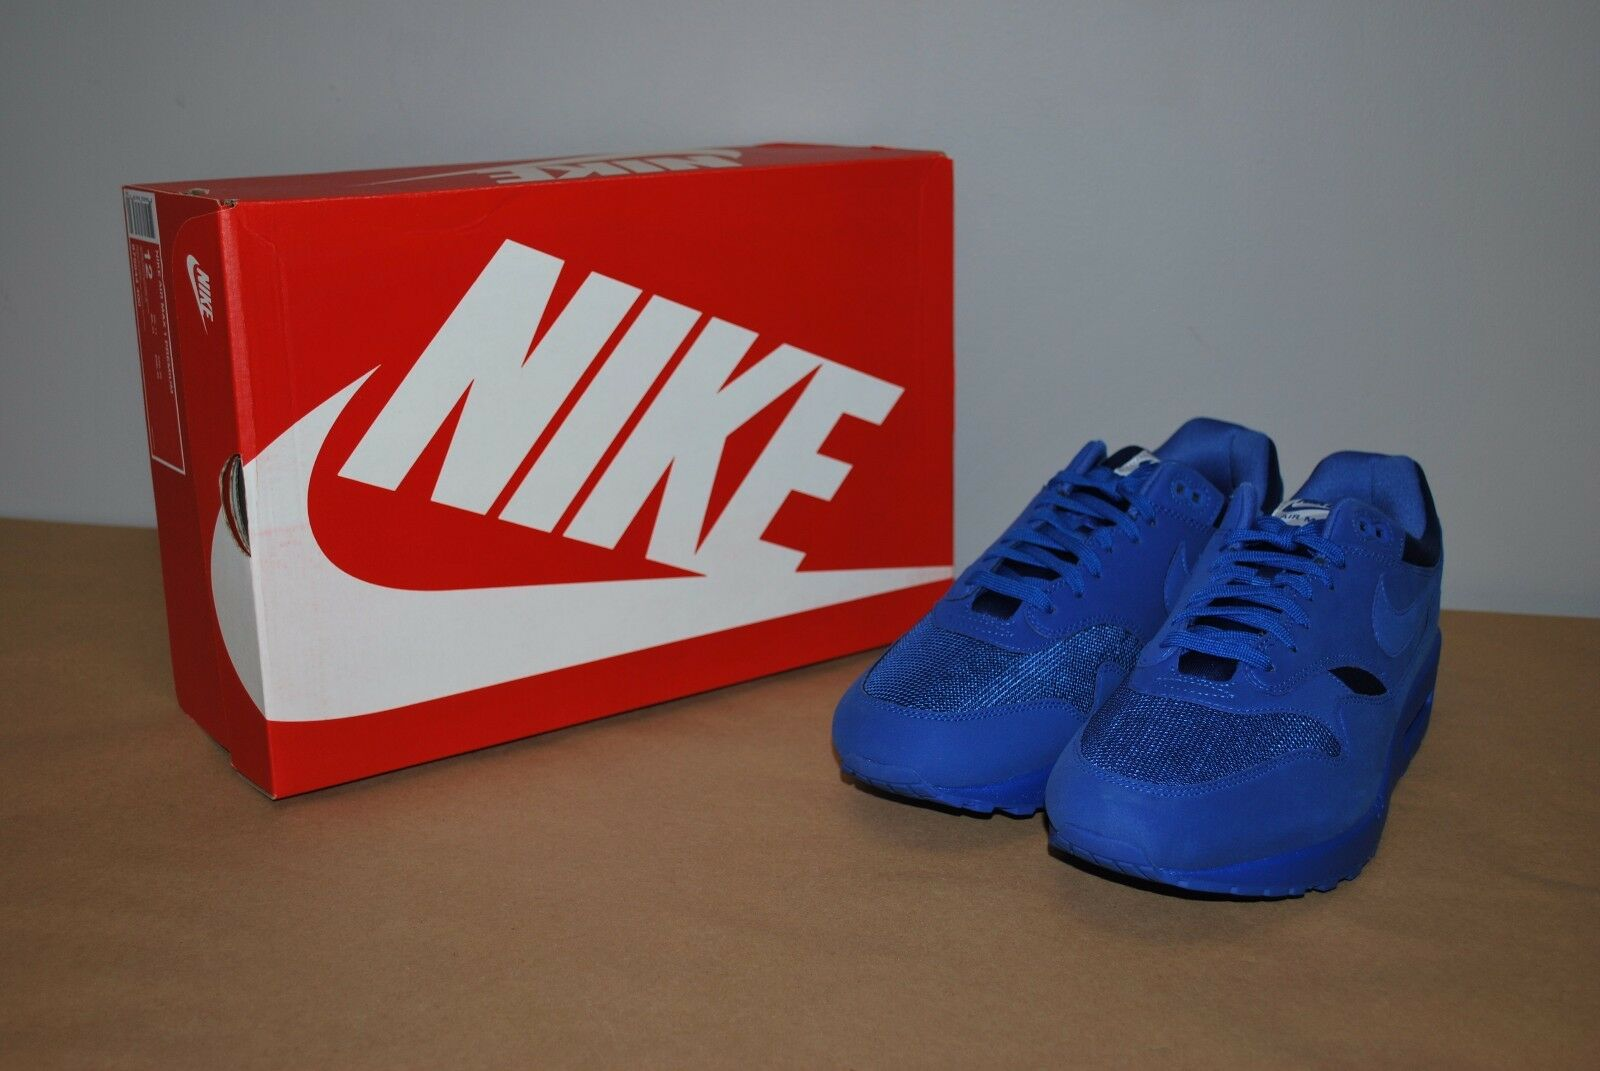 Details about Nike Air Max 1 Premium Tonal Pack Game Royal Blue 875844 400 Men's 8.5